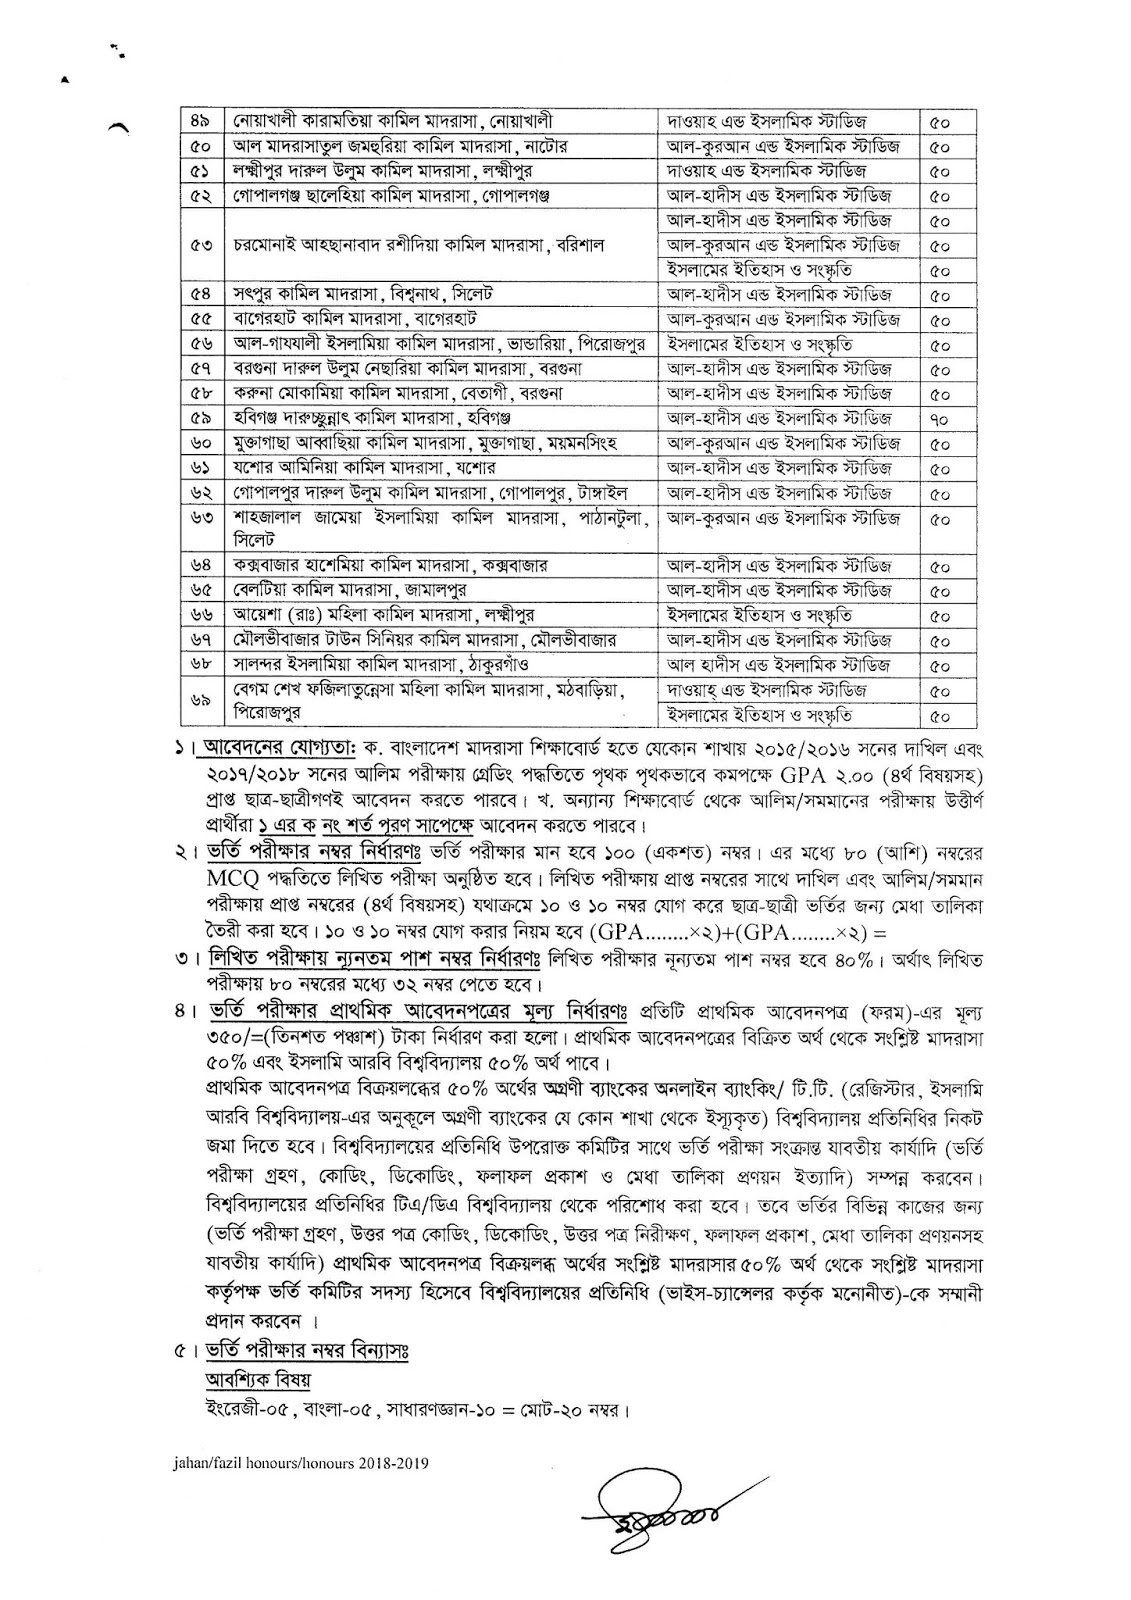 Islamic Arabic University, Bosila, Dhaka Admission Madrasah list